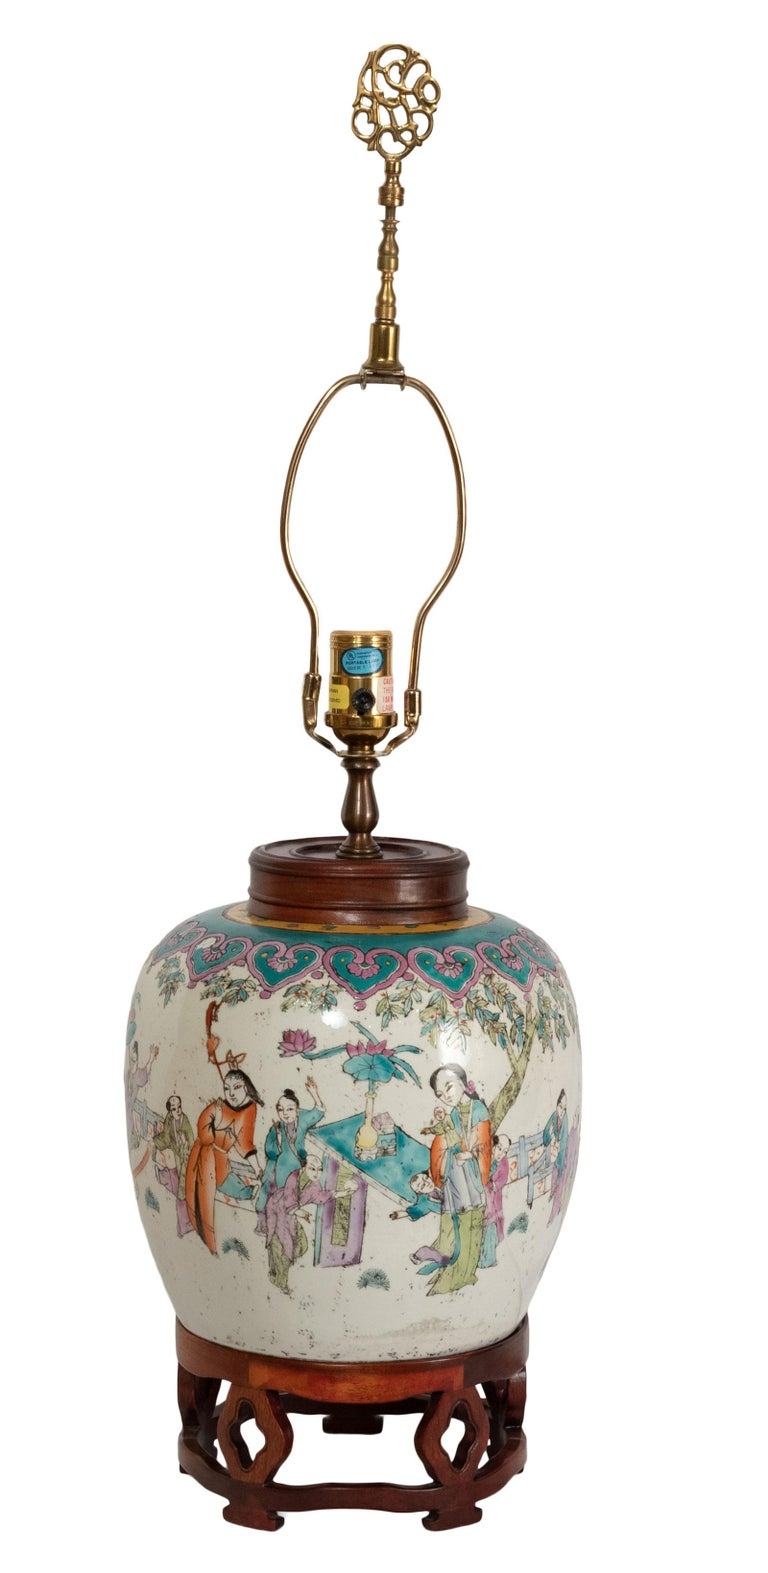 A lamped 19th century Qing dynasty famille rose peach vase with hardwood stand and cover.